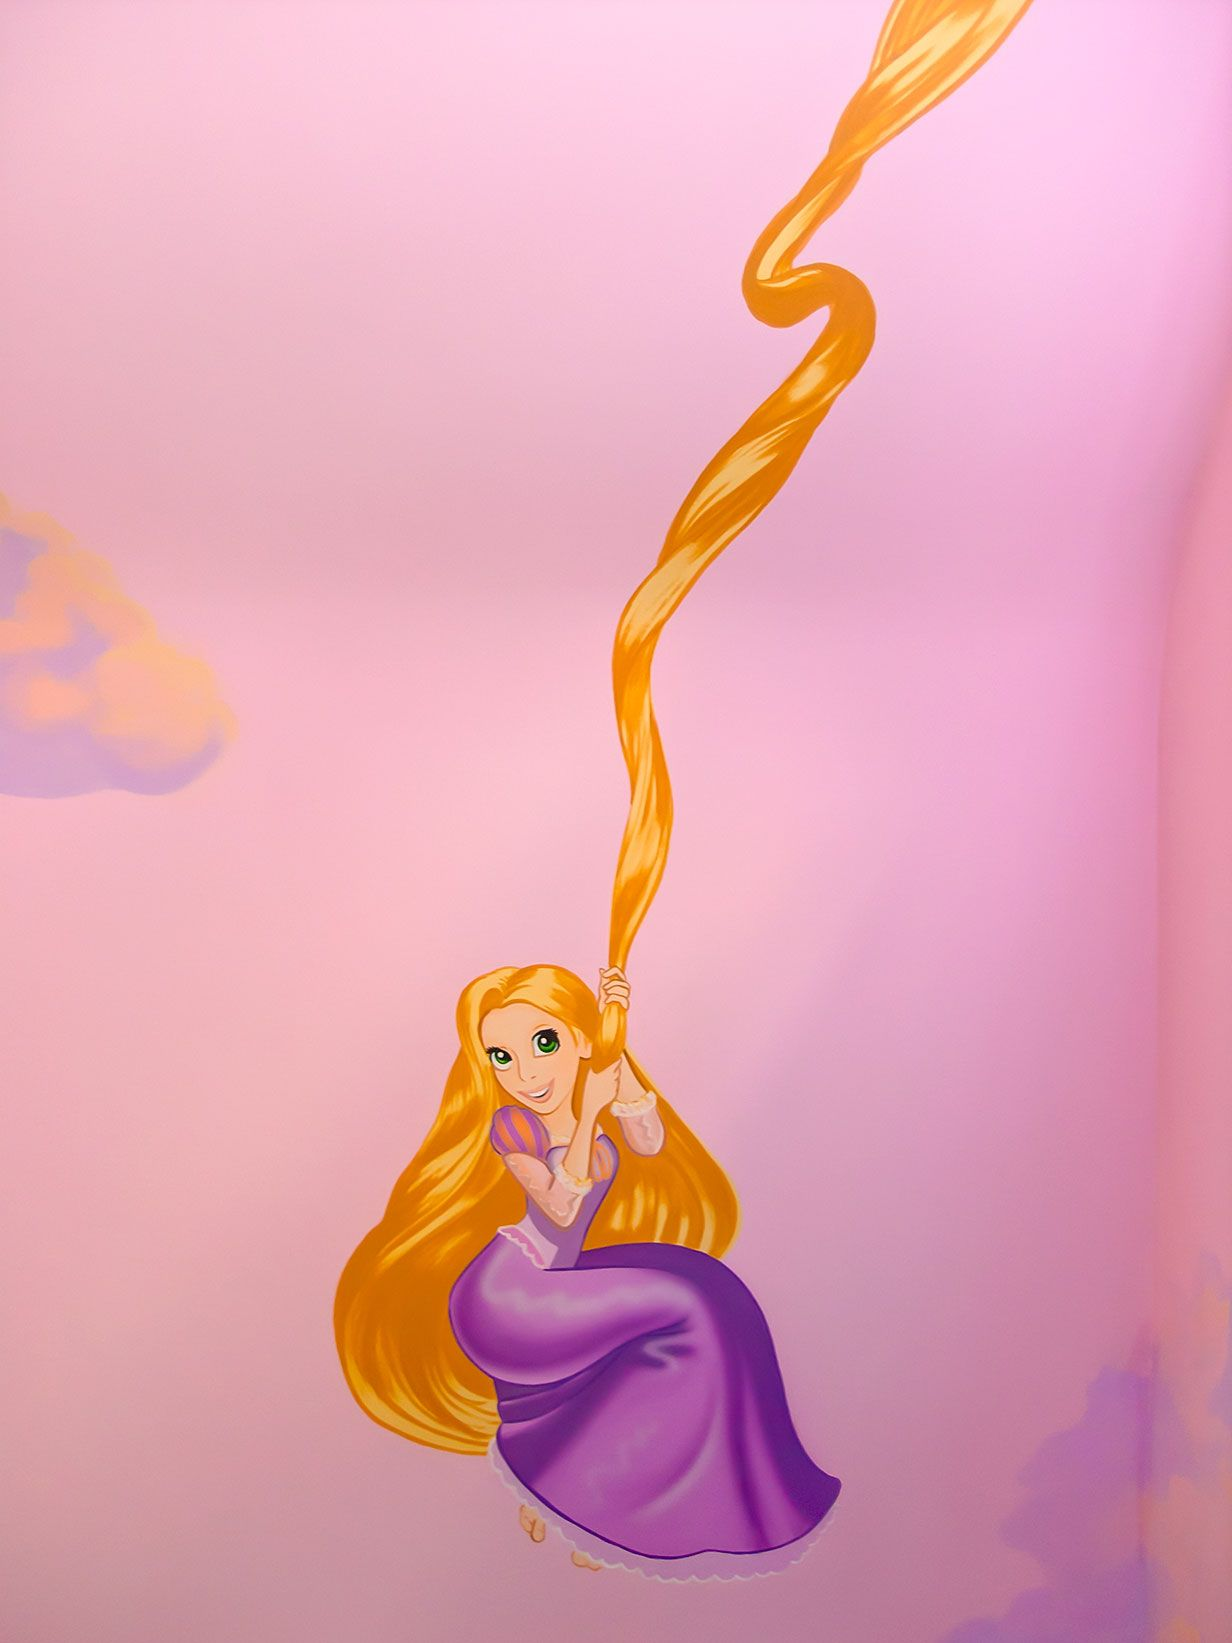 Rapunzel From Tangled Using Her Hair To Swing On, Disney